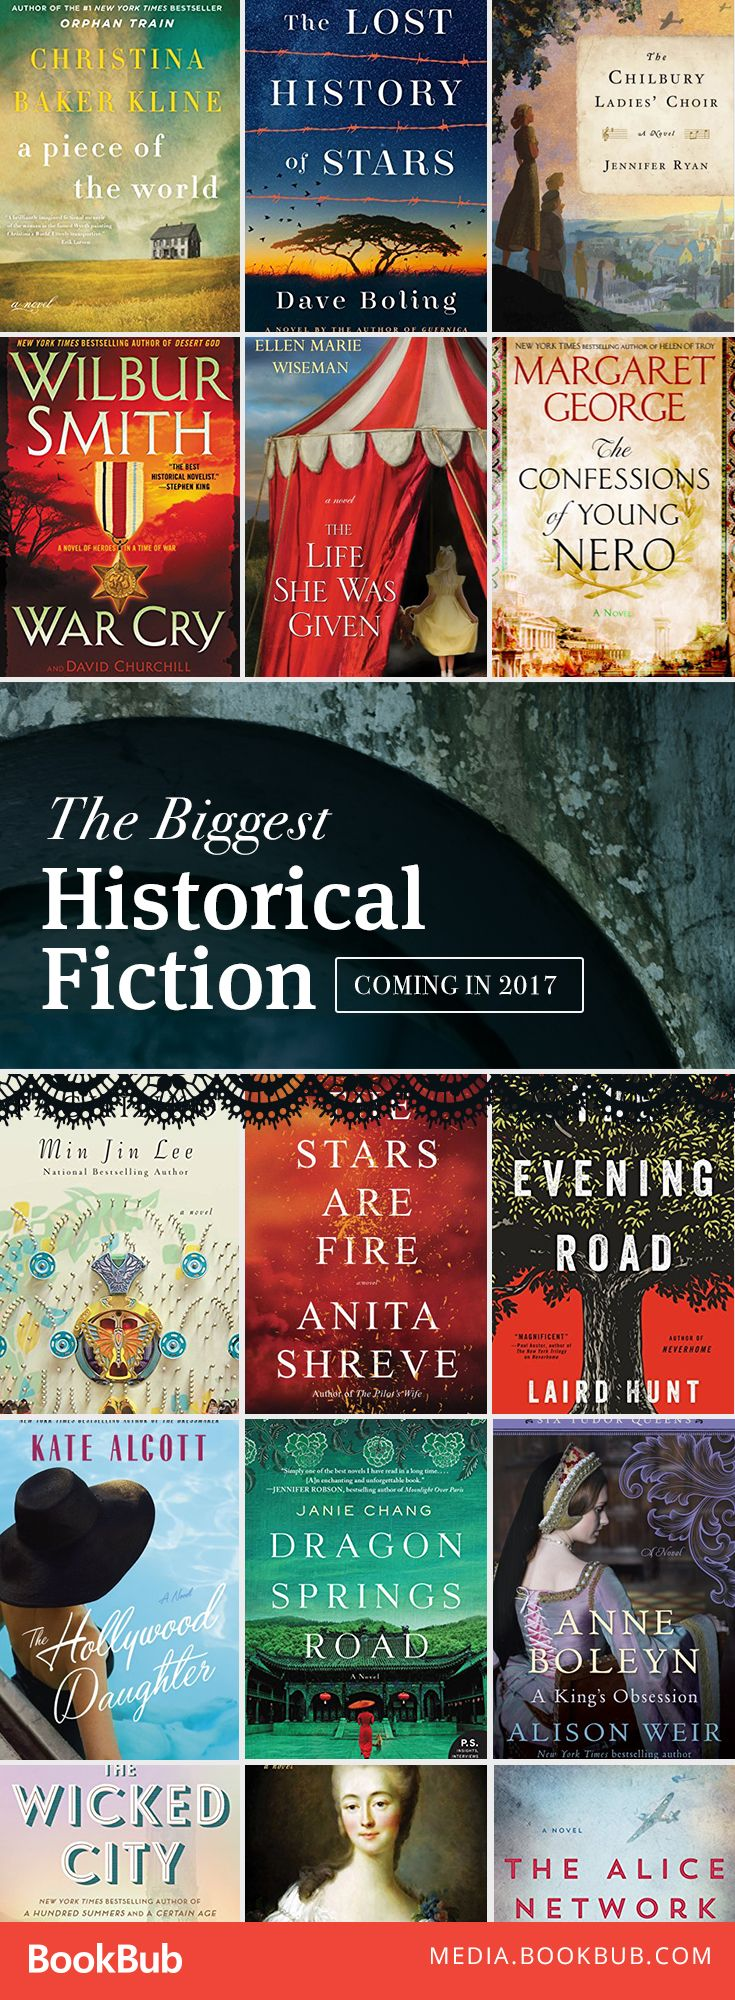 The Biggest Historical Fiction Booksing In 2017